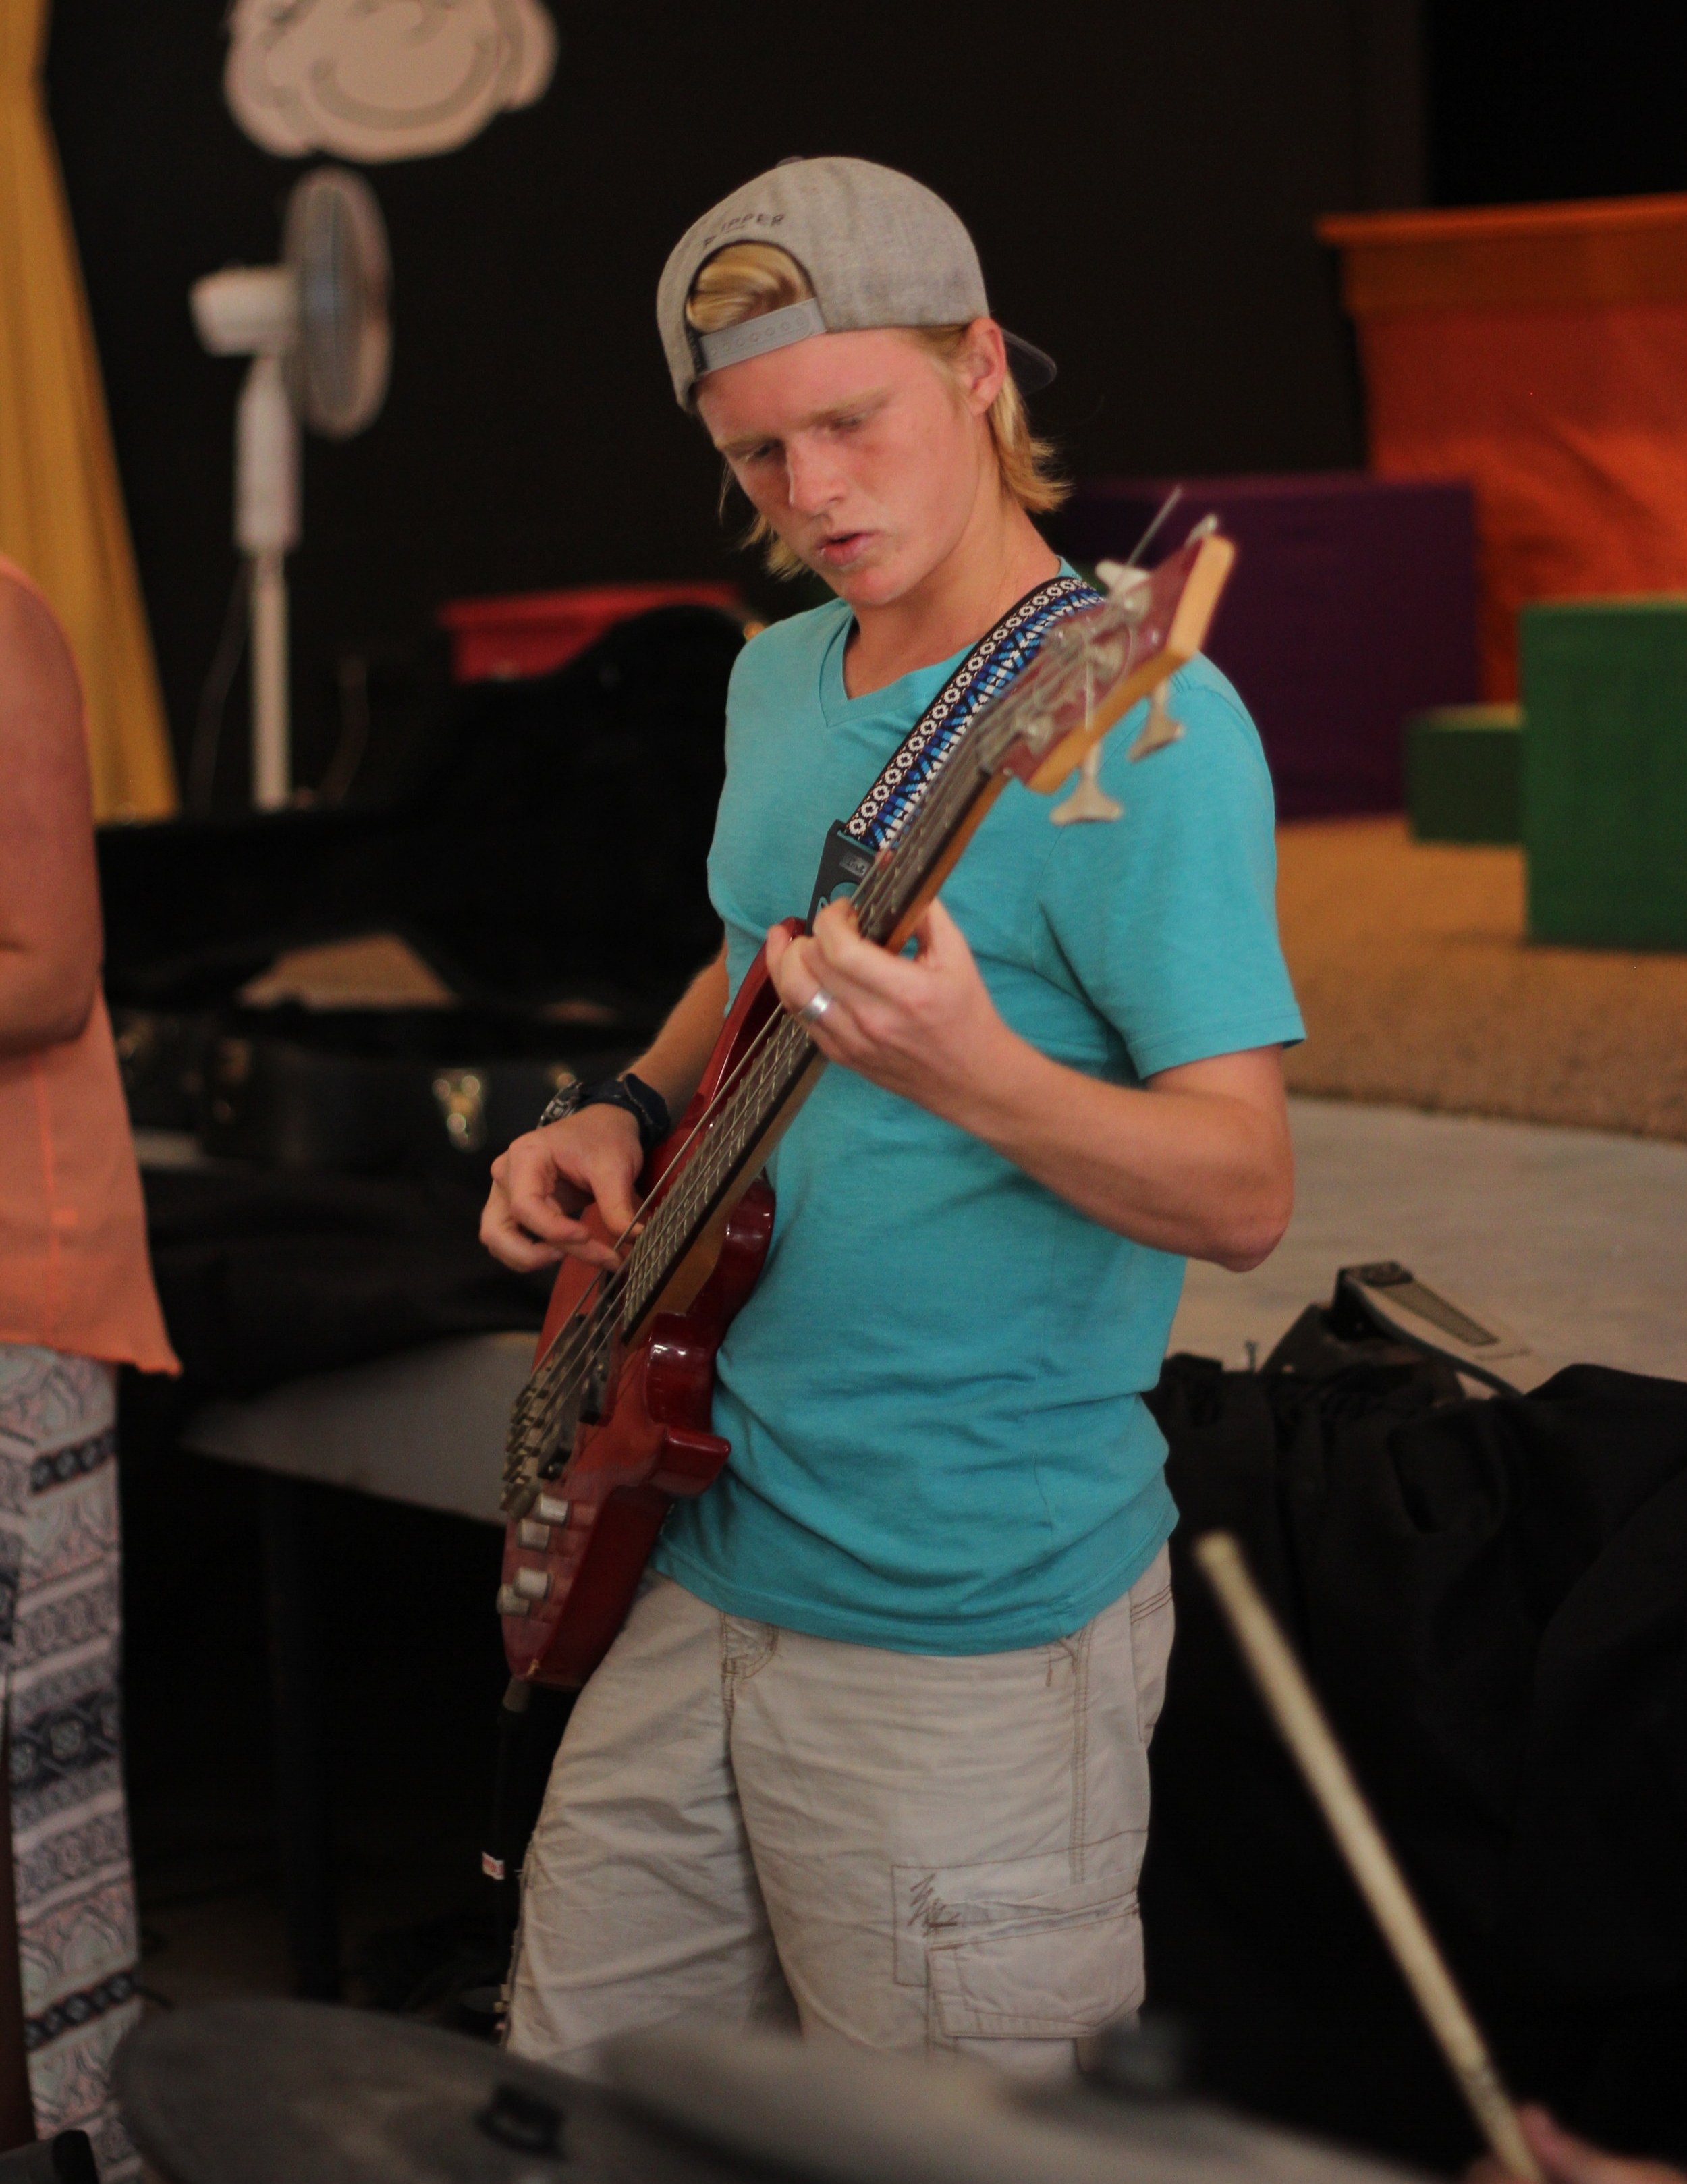 Students have the opportunity to learn musical instruments and perform at Dakar Academy.